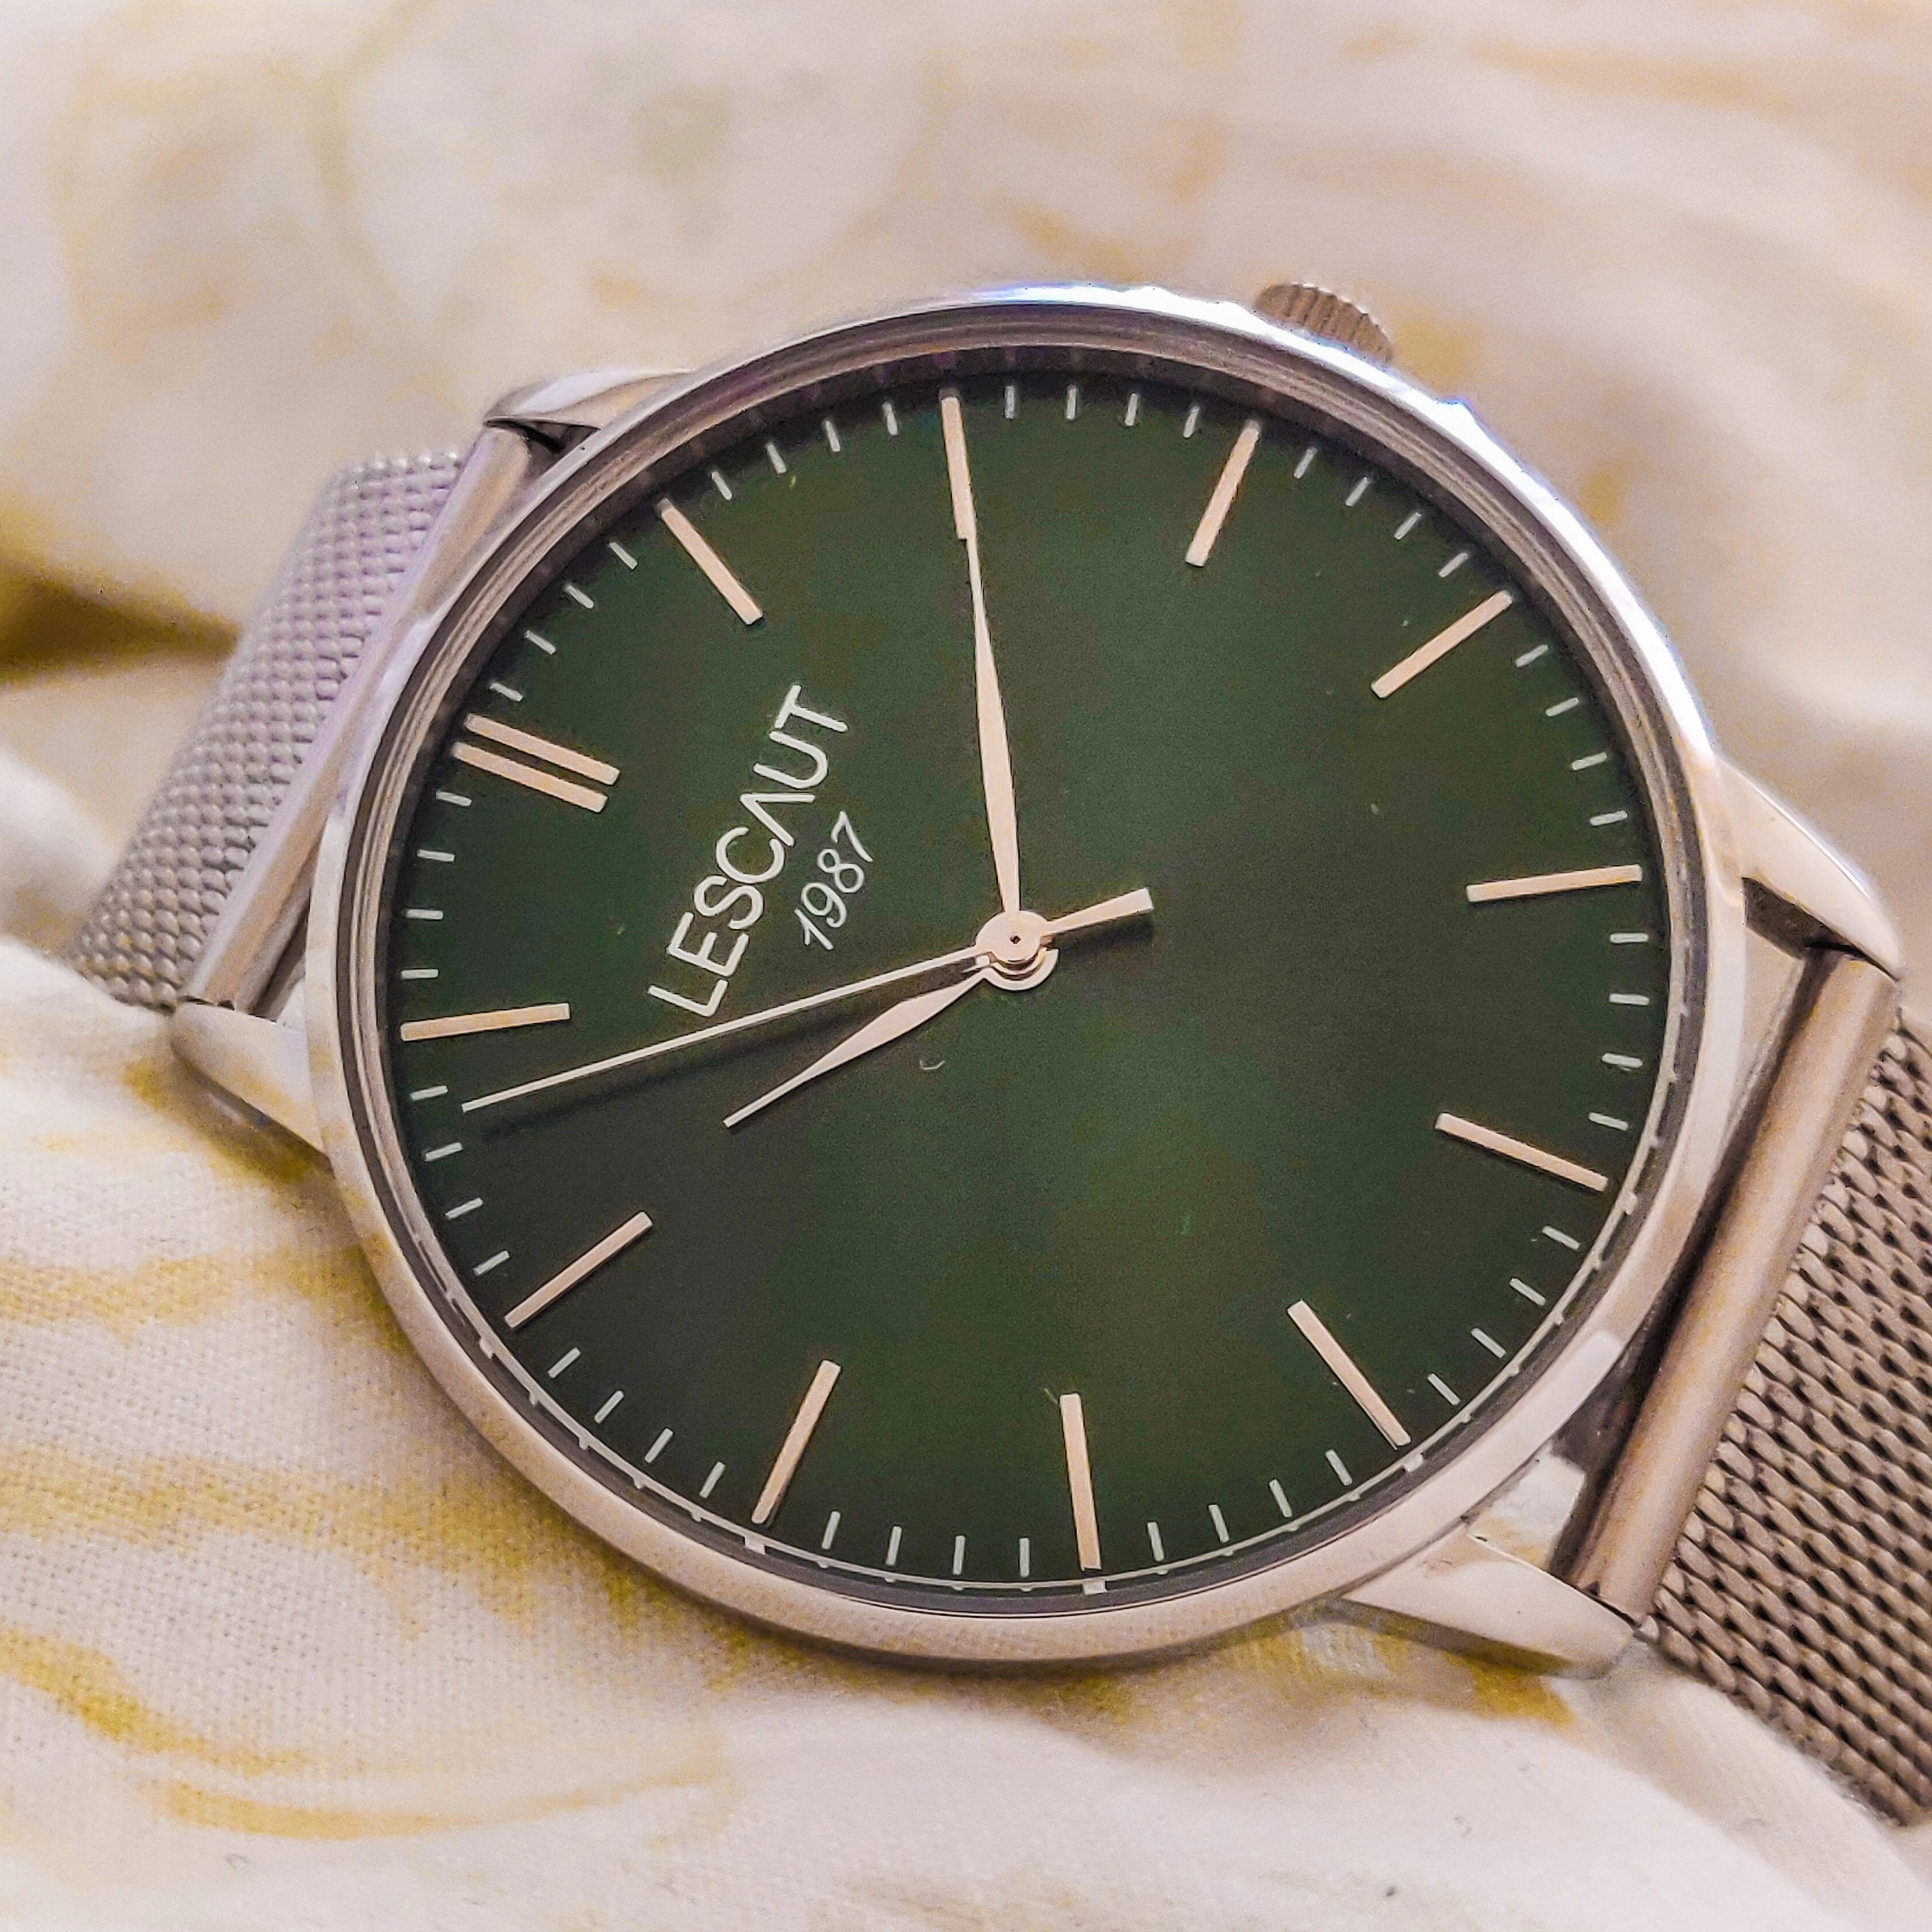 LESCAUT Emerald Collection close-up quartz horloge groene wijzerplaat staal zilver kast mesh bandje Green dial face watch silver steel case Milanese strap